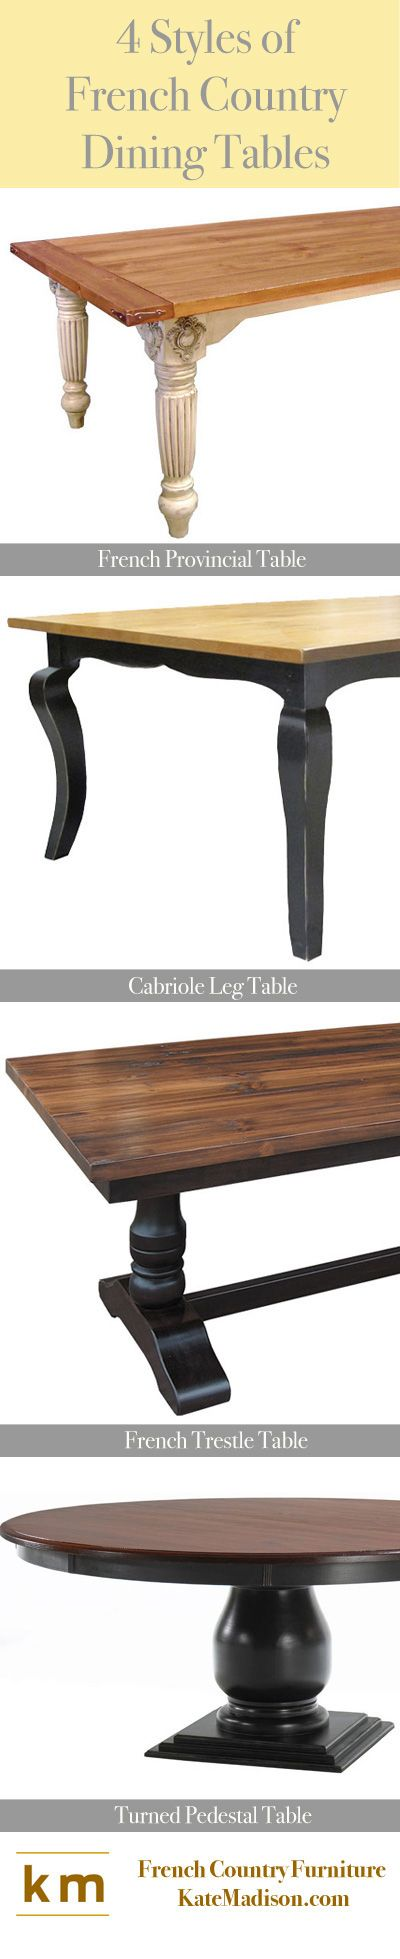 4 Styles Of French Country Tables